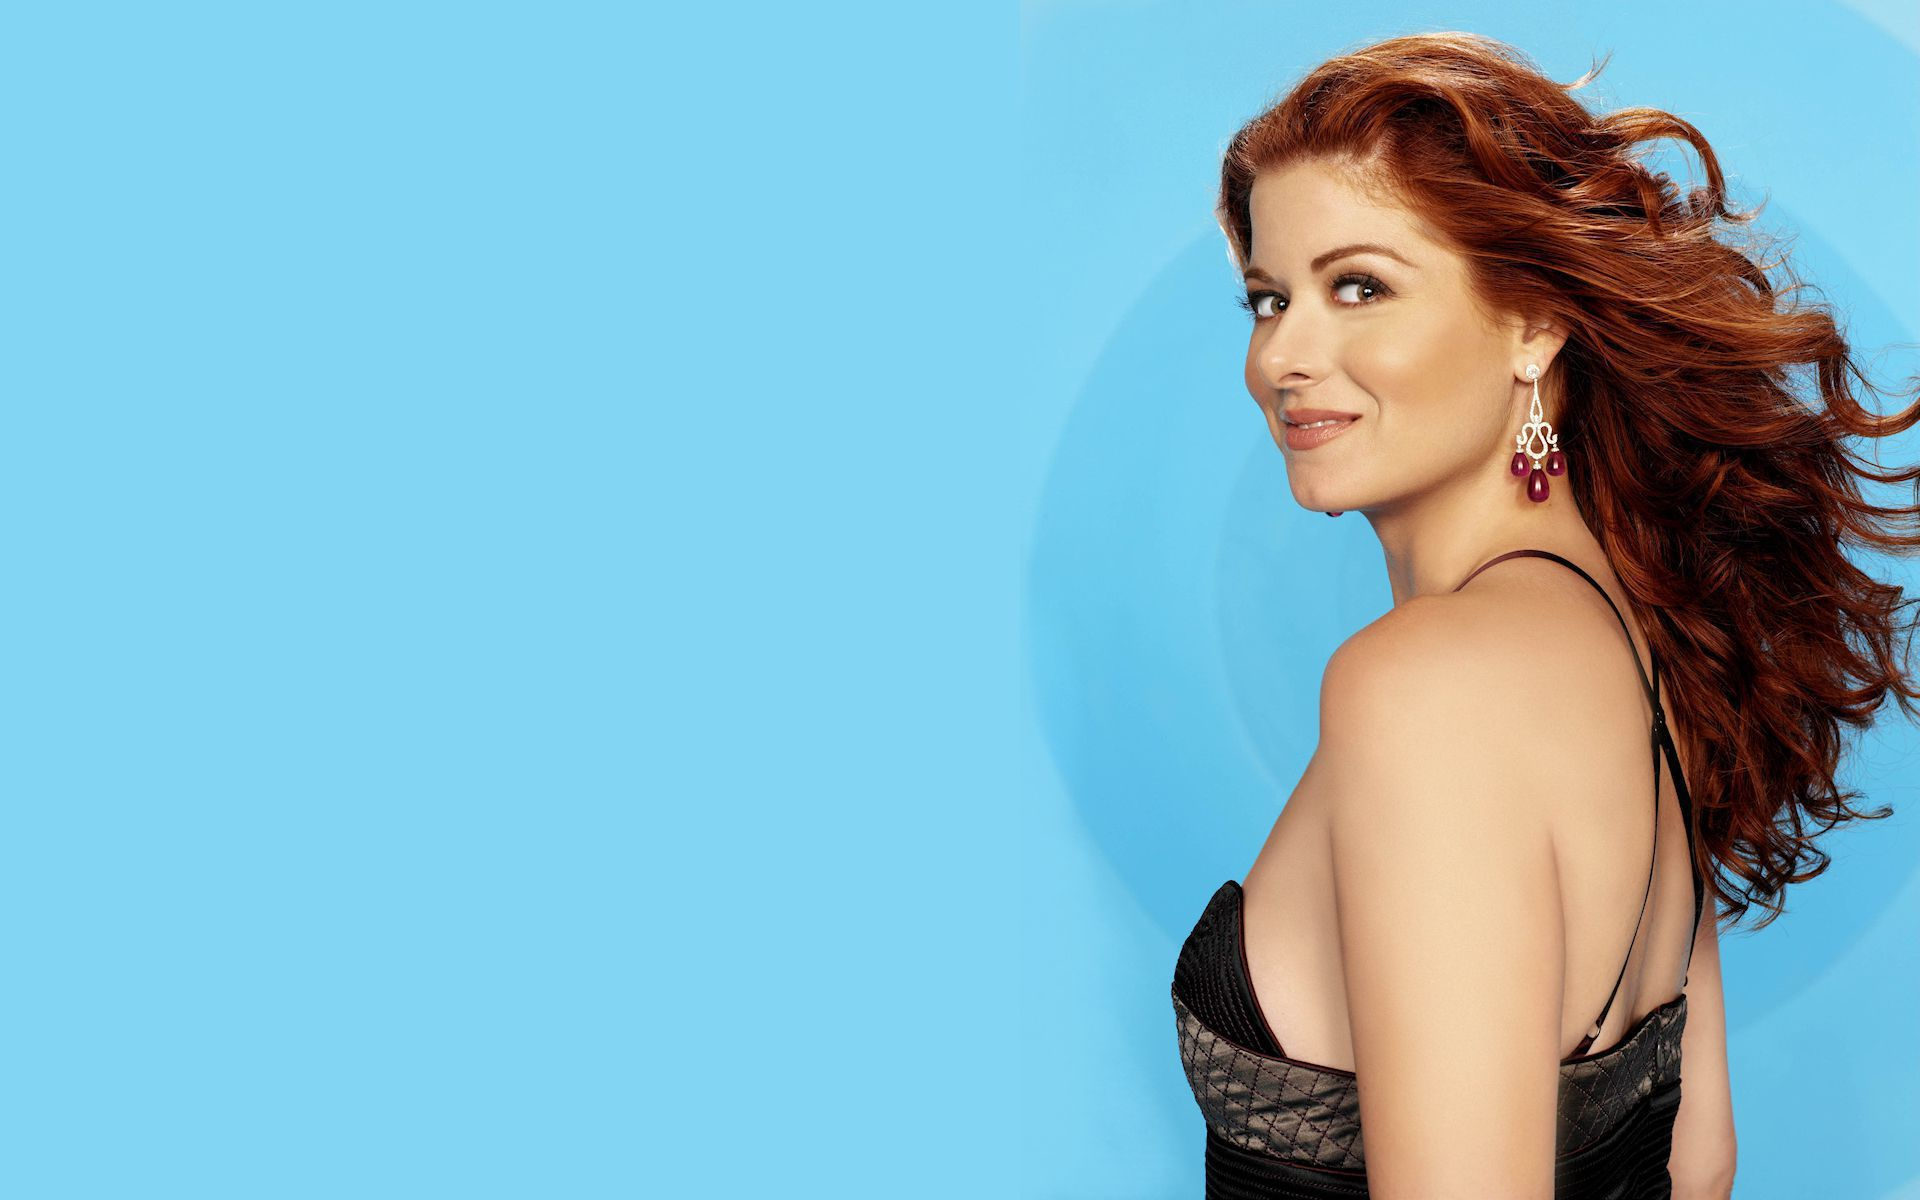 Girls Brave Wallpaper Debra Messing Wallpapers Backgrounds